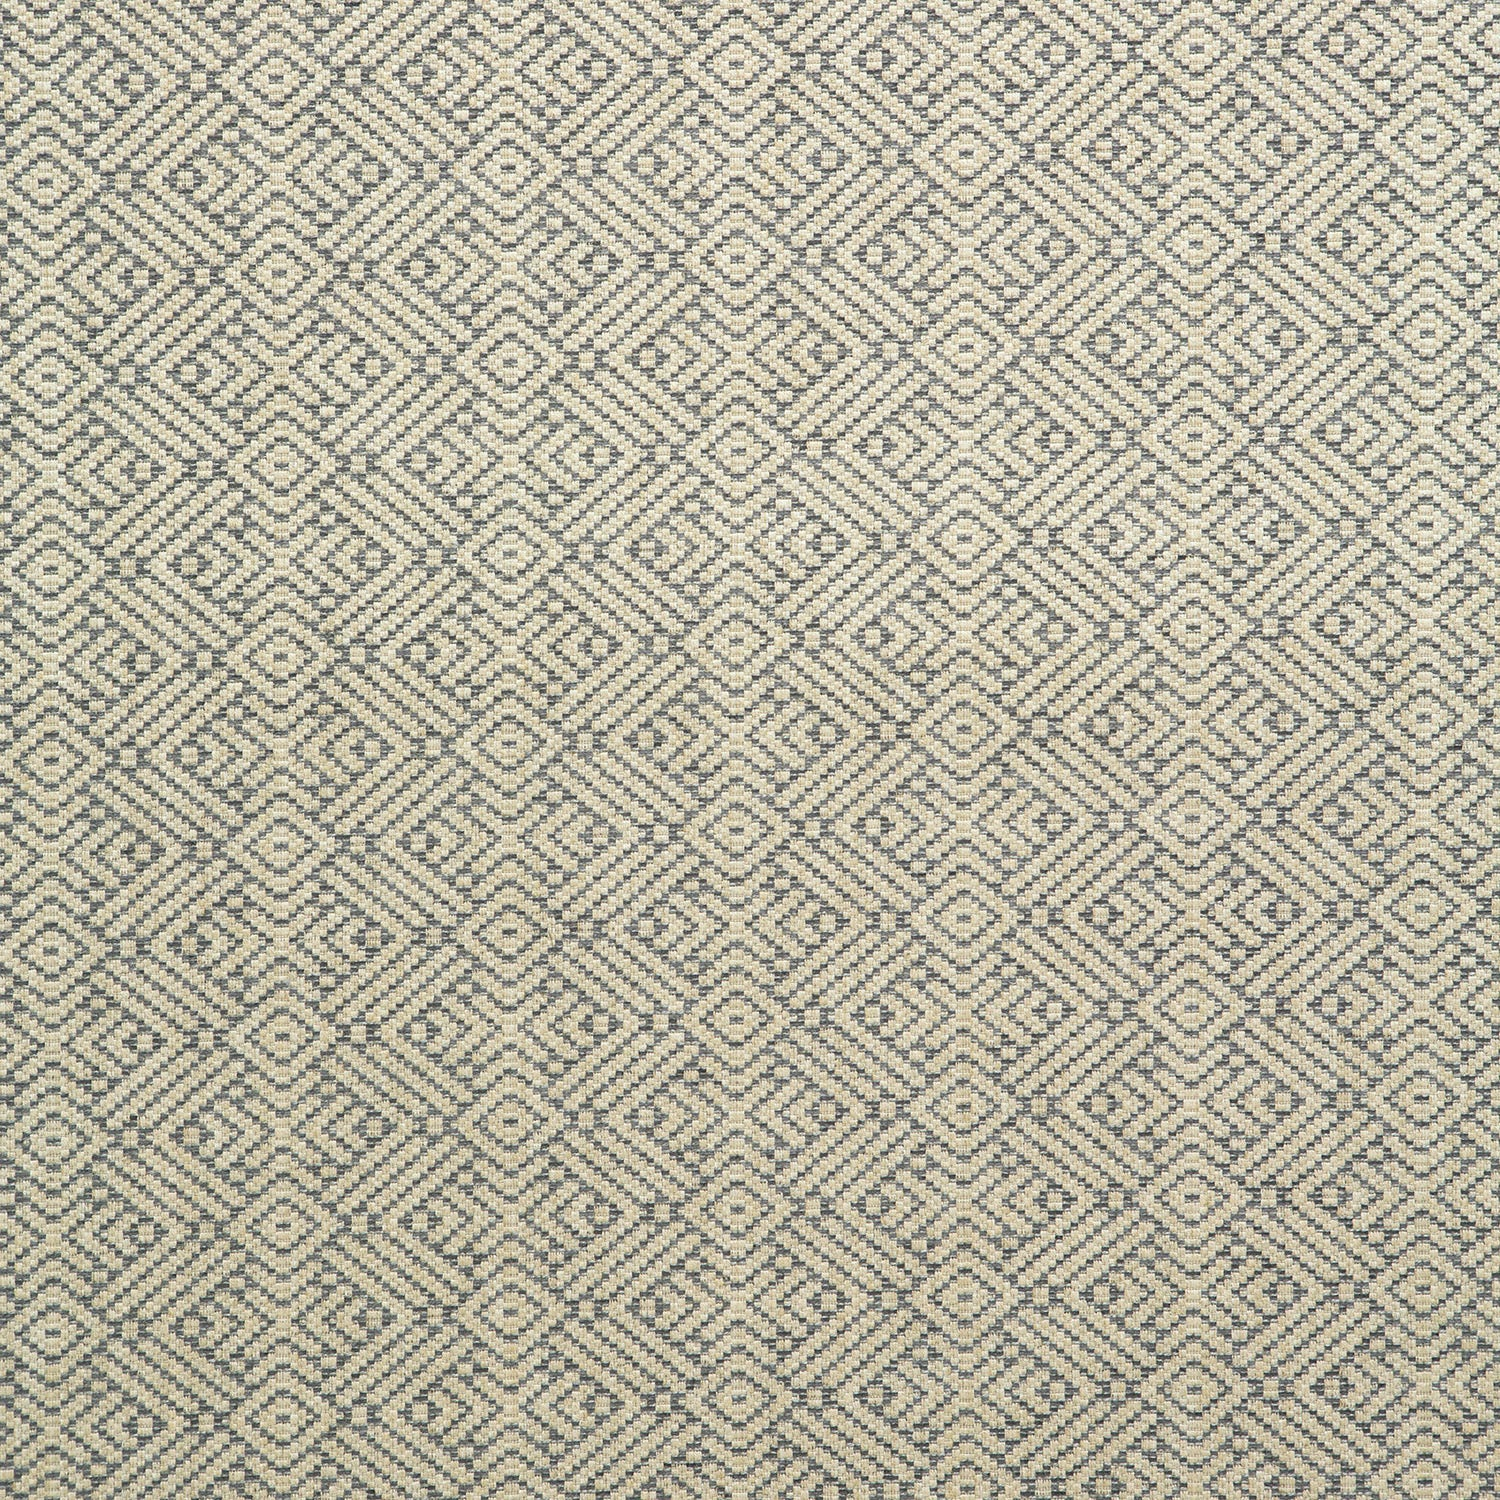 Fabric swatch of a grey and neutral geometric weave fabric for curtains and upholstery